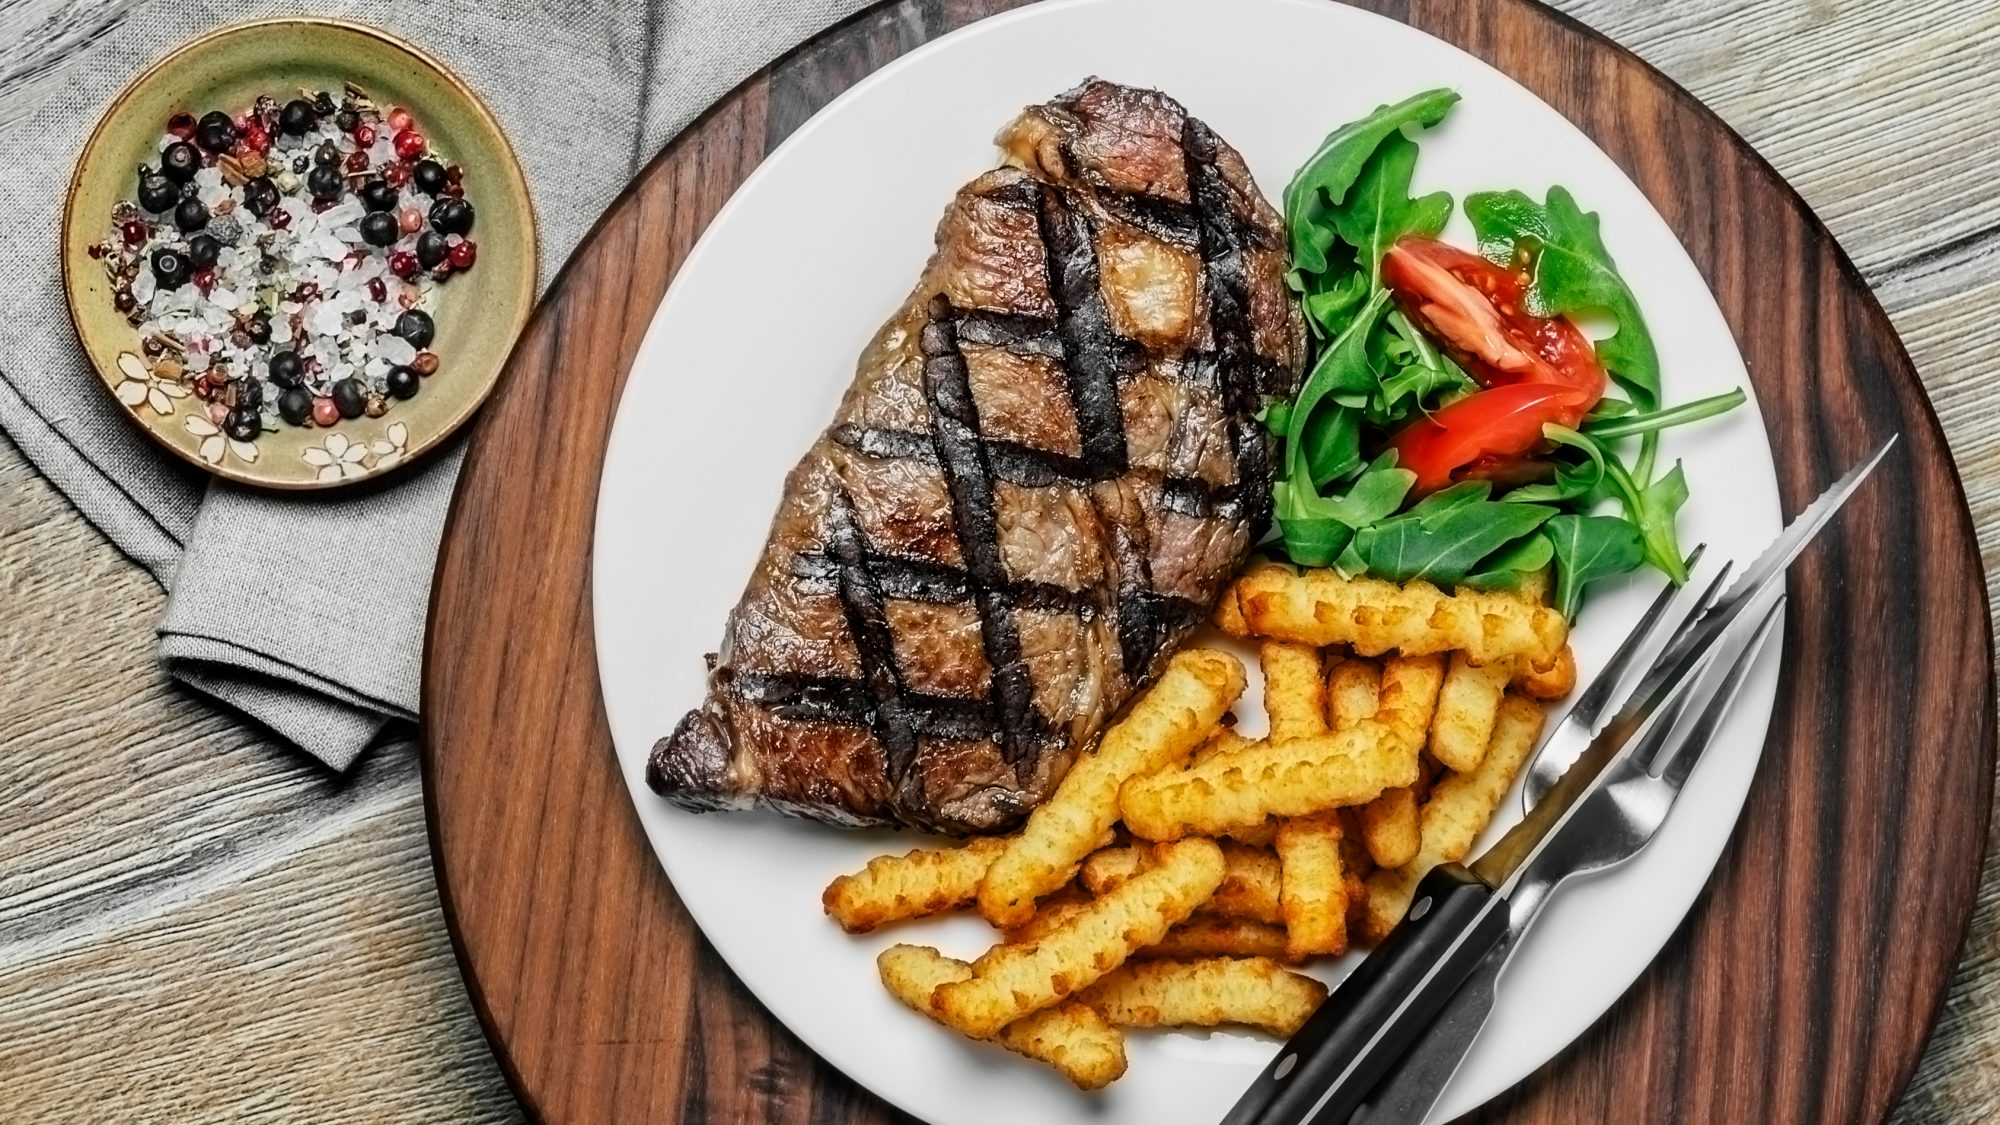 Steak with fries - father's day dinner grill menu